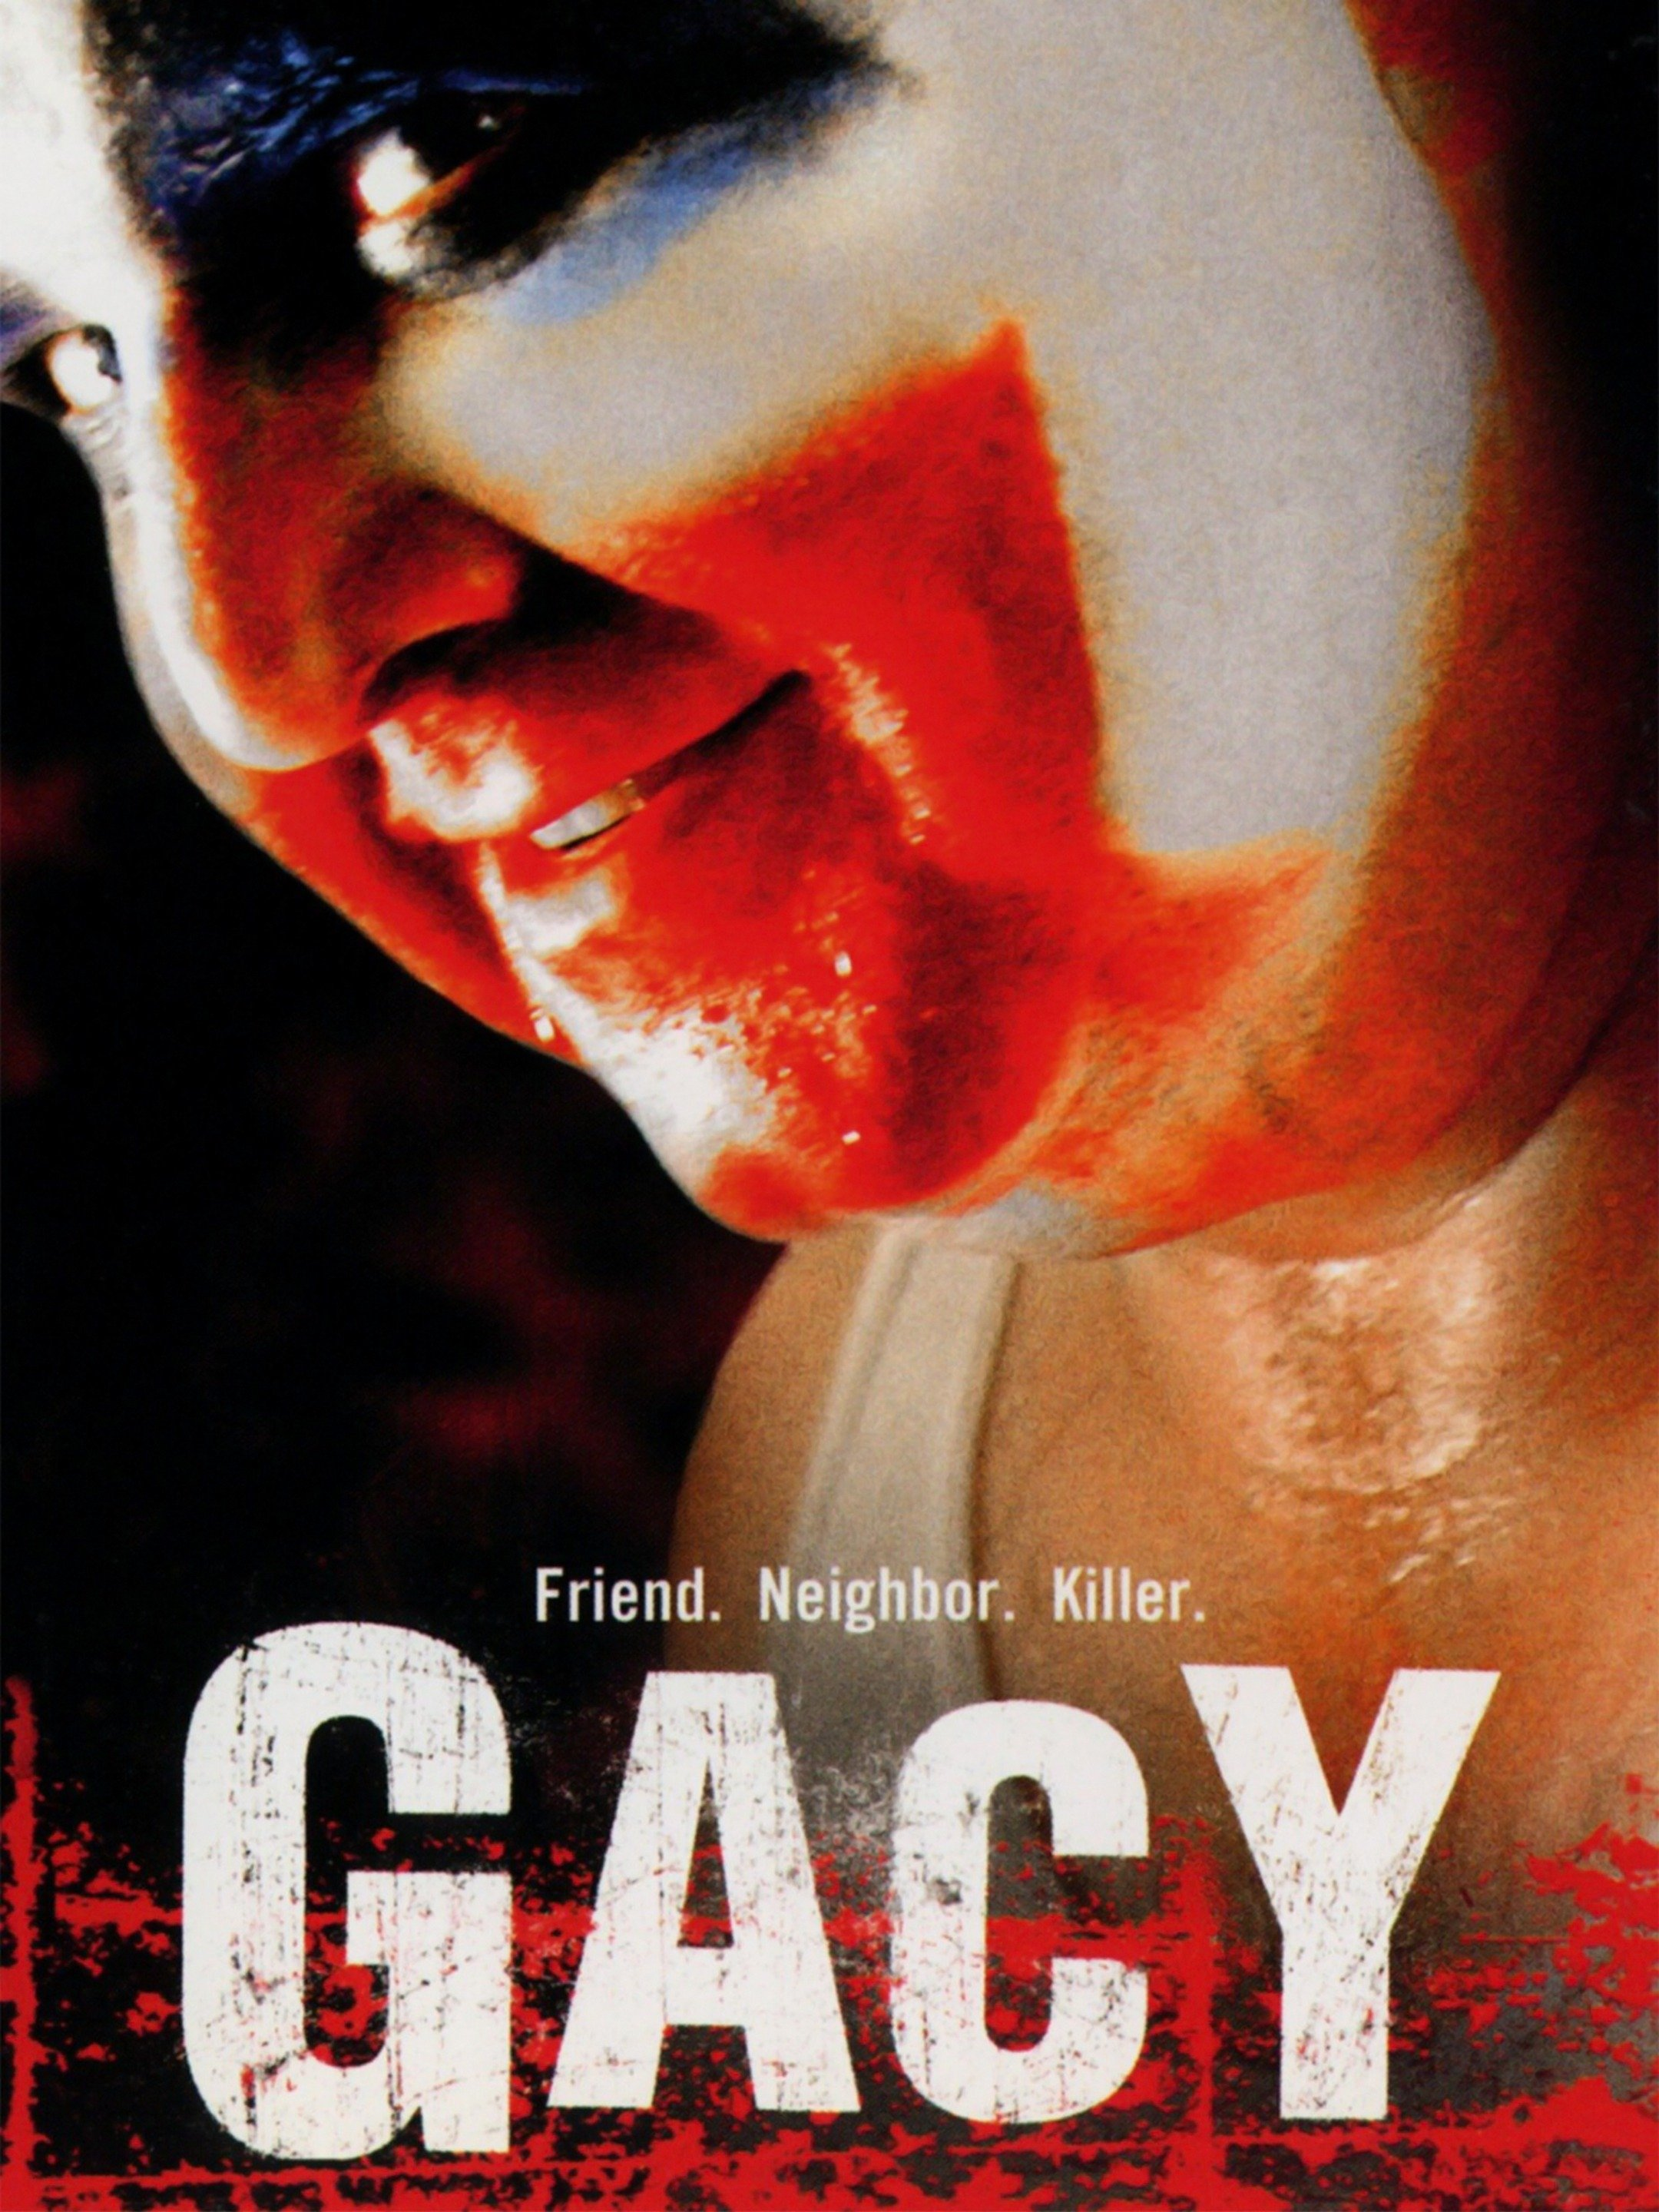 Gacy Movie Reviews 272 likes · 65 talking about this. rotten tomatoes